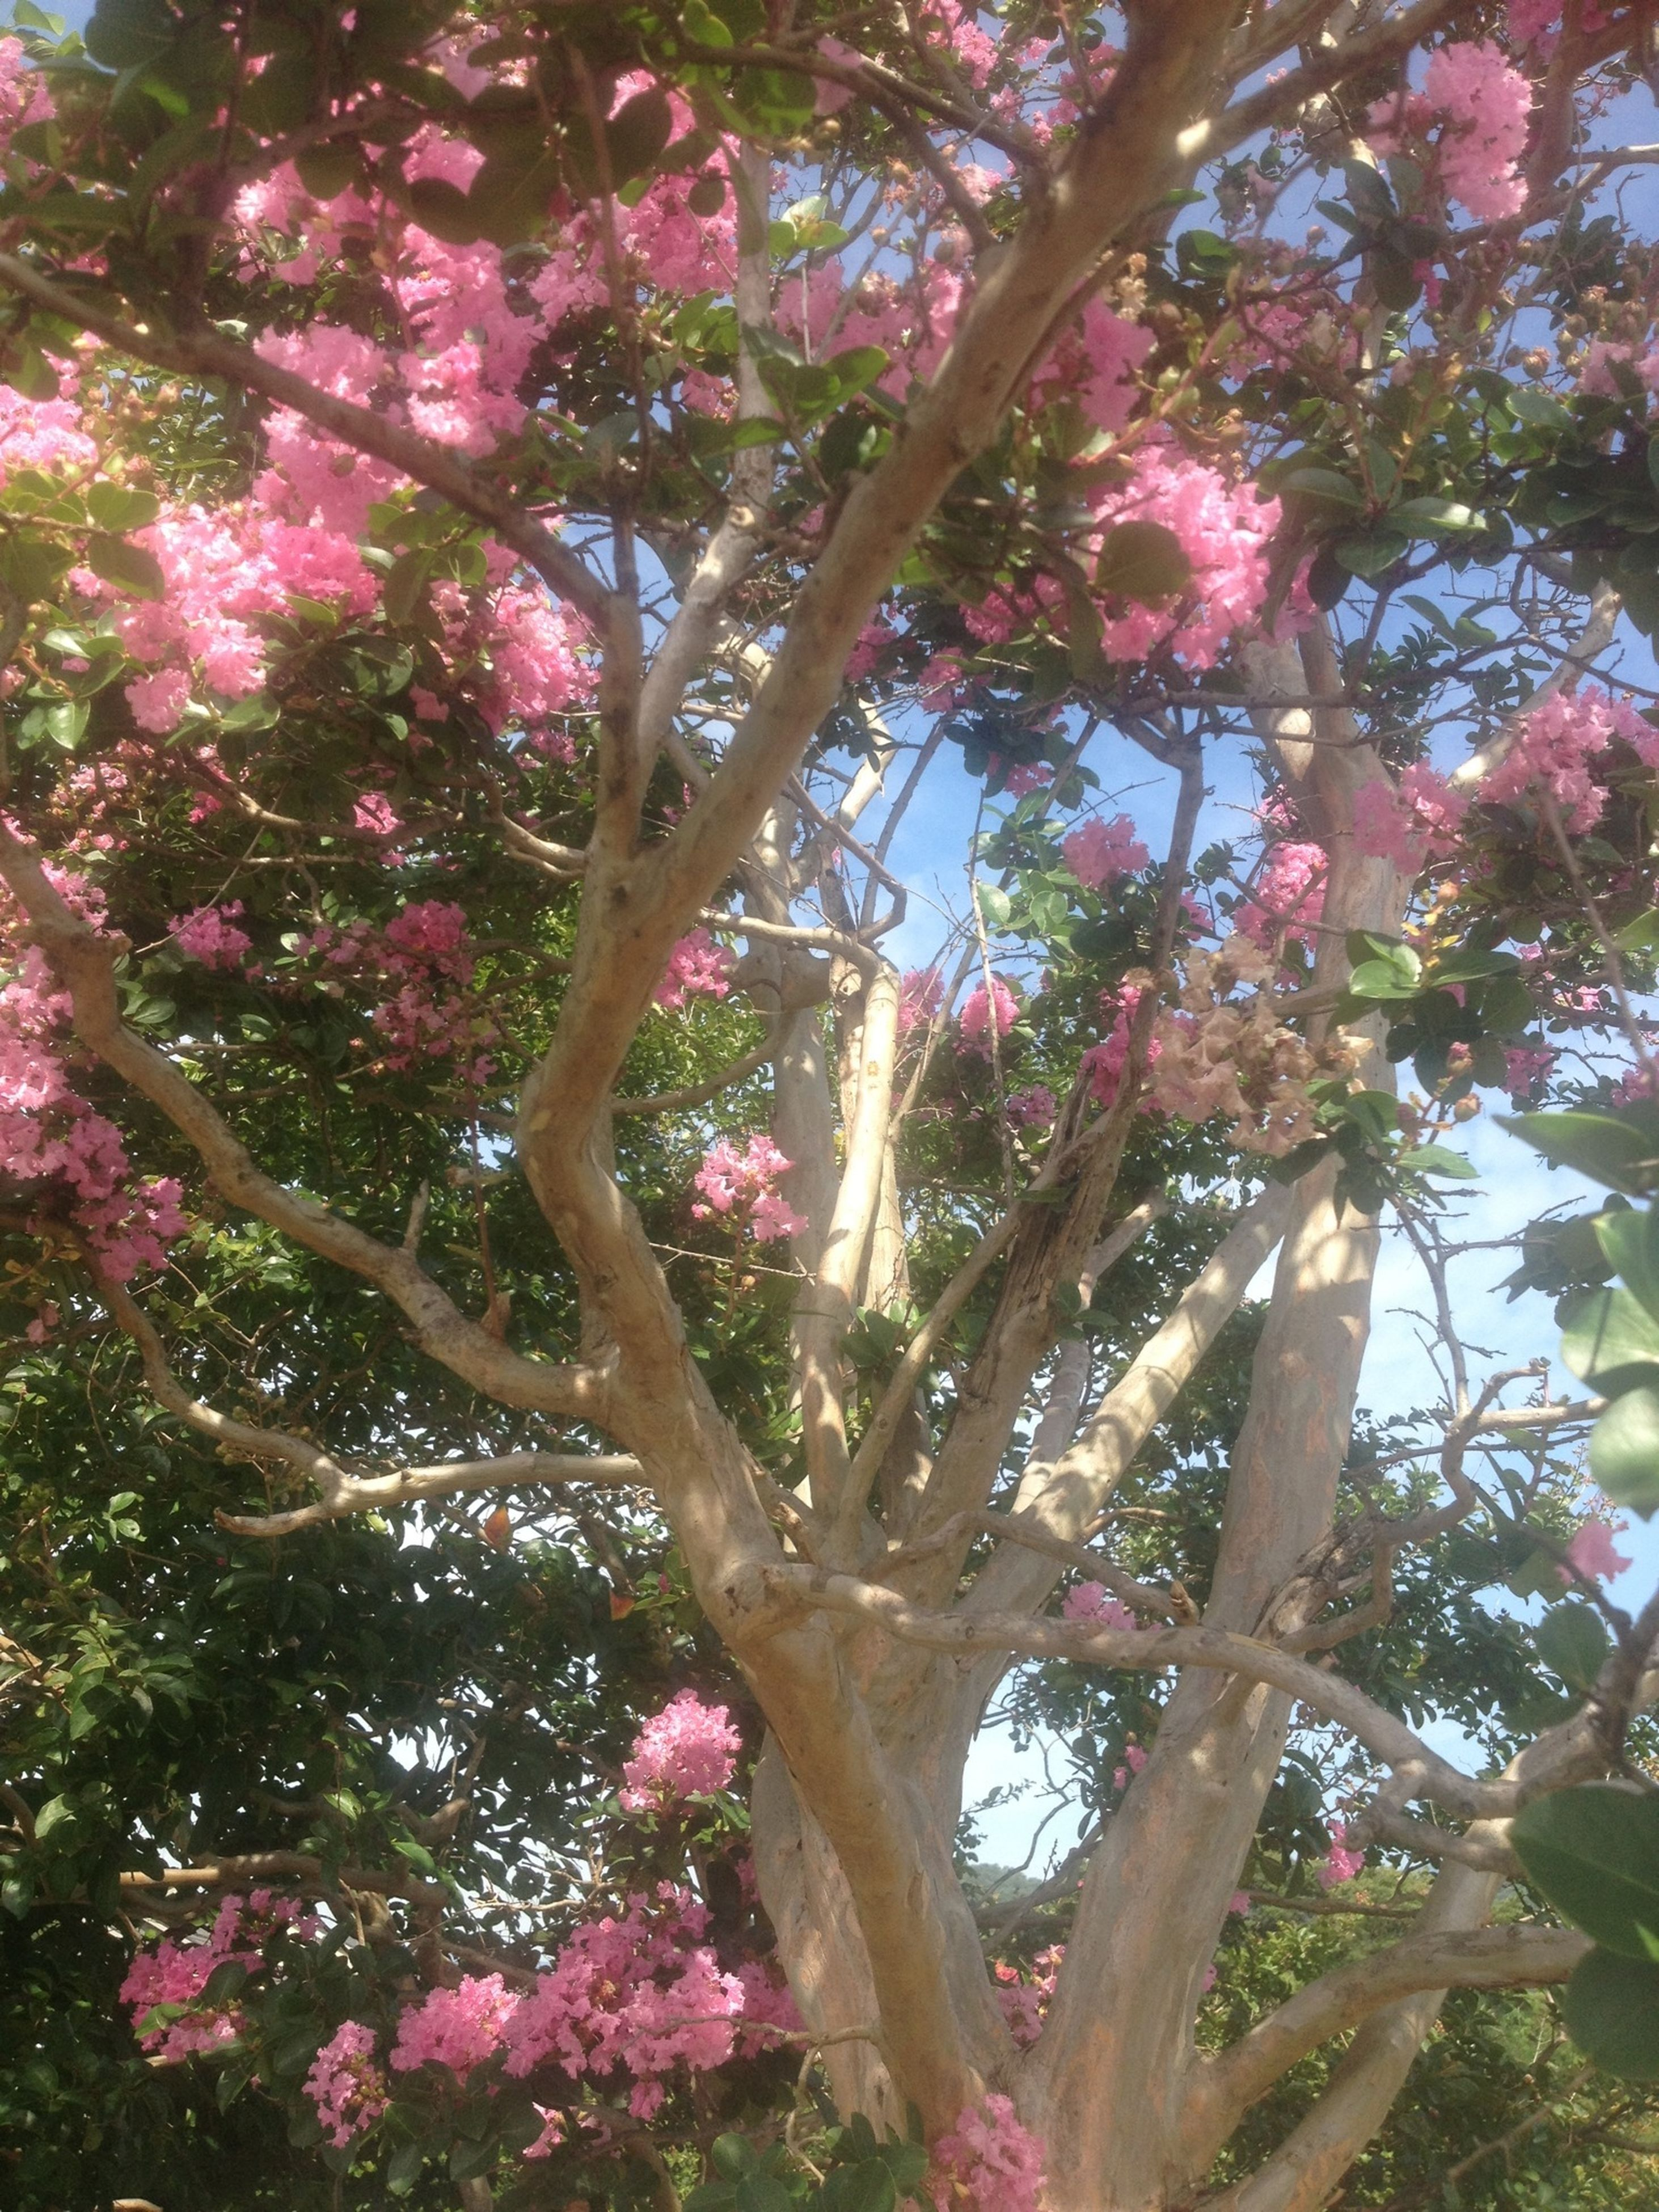 tree, growth, flower, branch, low angle view, beauty in nature, nature, freshness, pink color, tranquility, leaf, fragility, day, outdoors, plant, no people, tree trunk, sunlight, blossom, growing